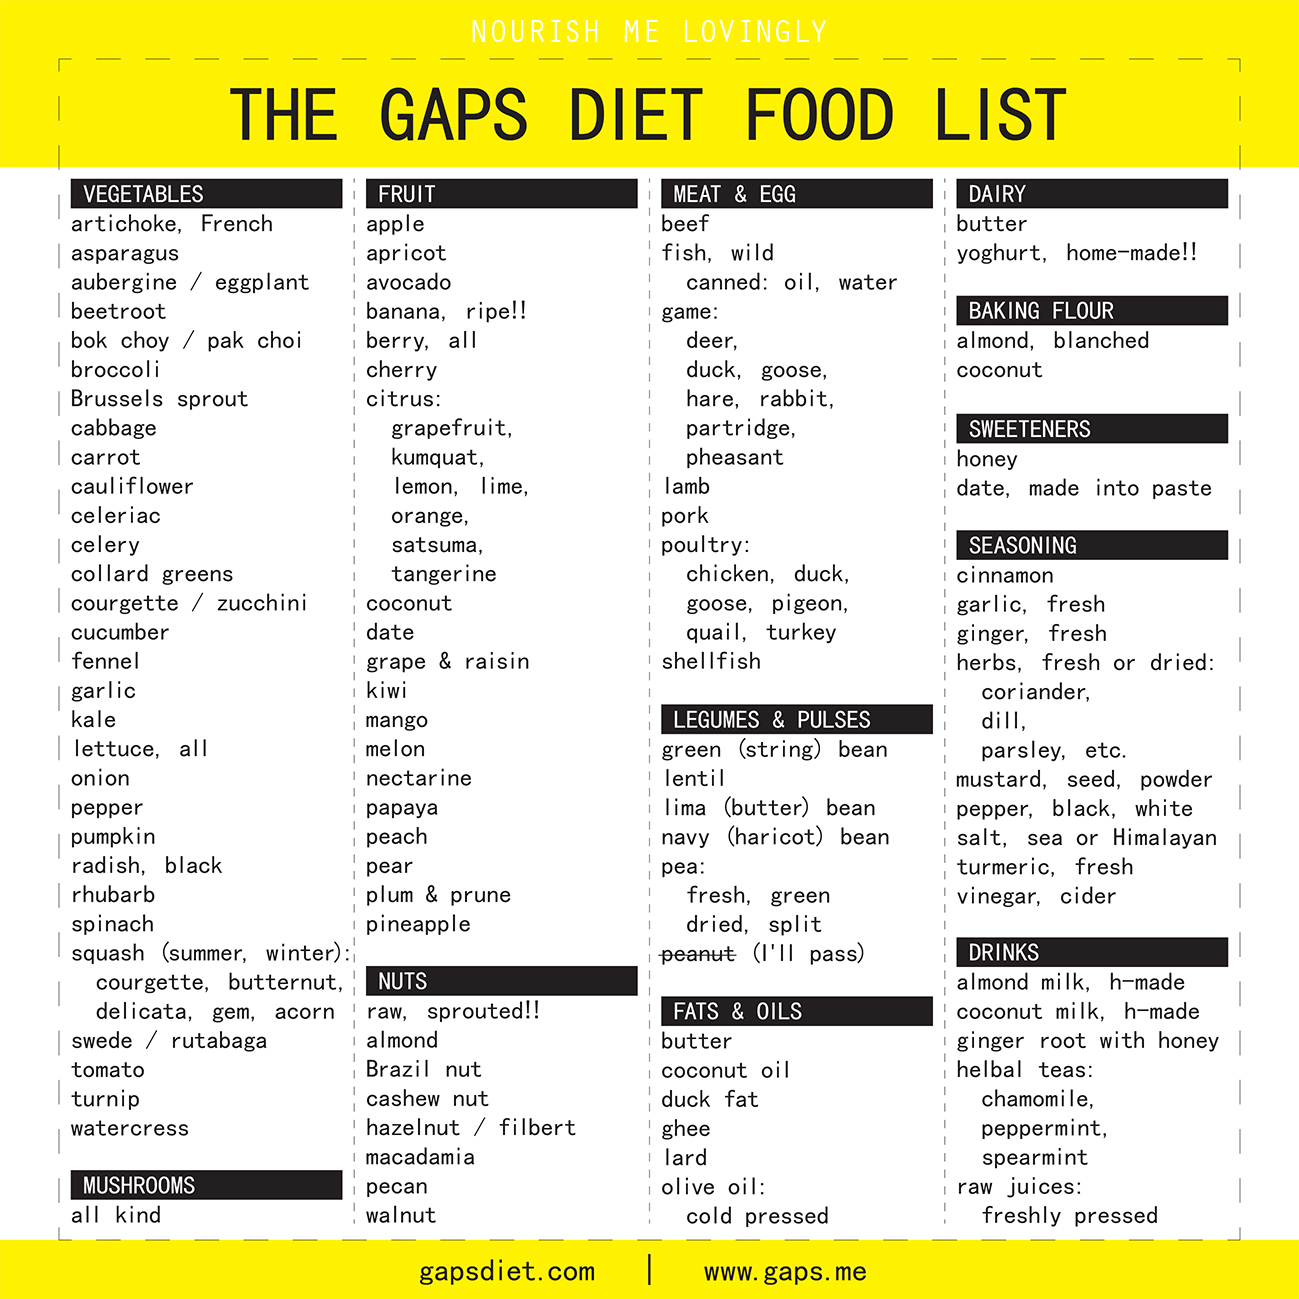 nourish me lovingly: the gaps diet food list